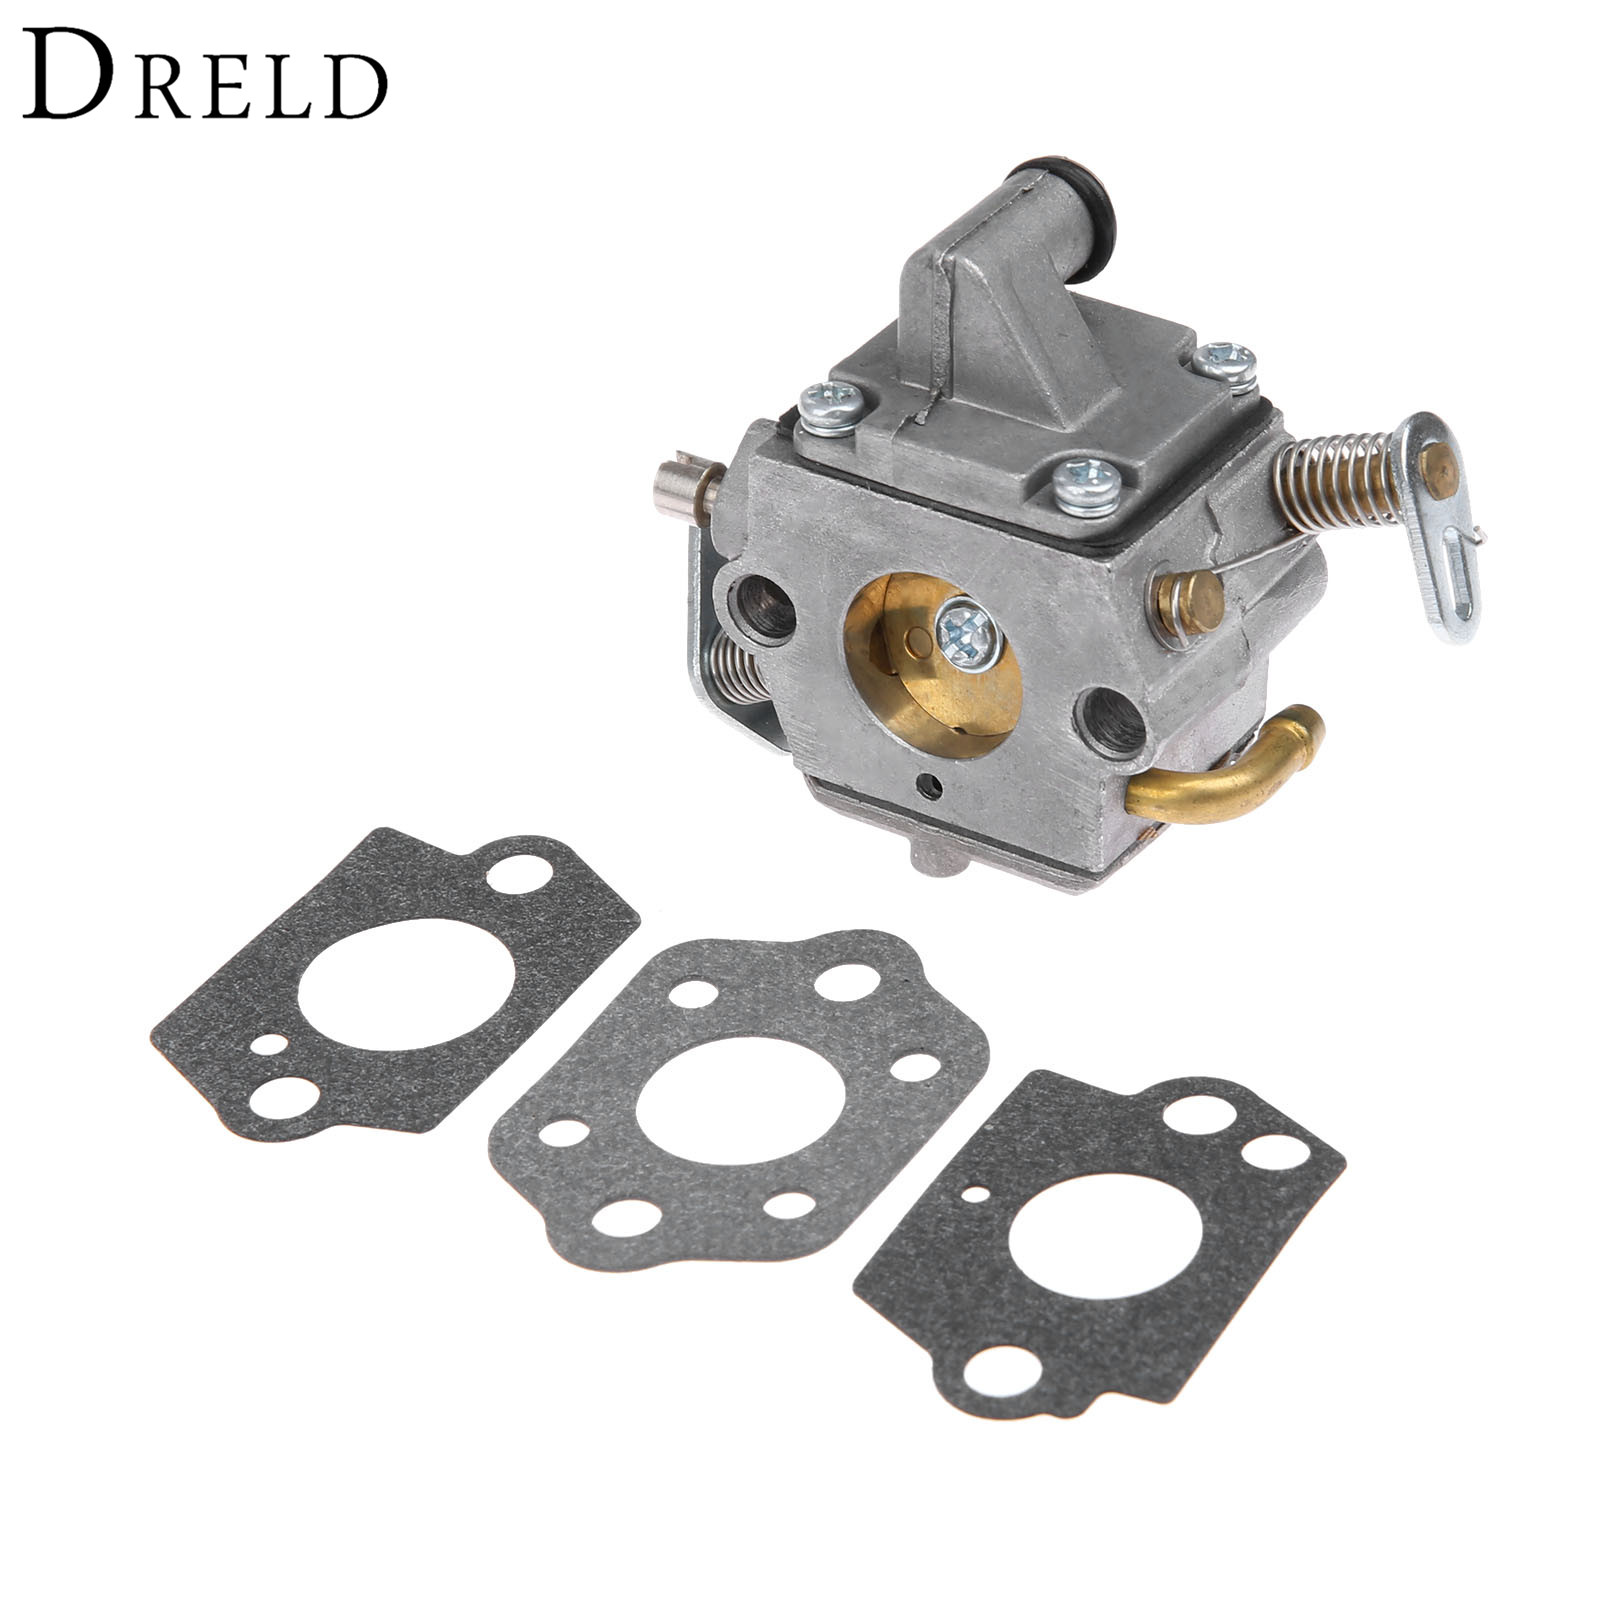 DRELD Chainsaws Carburetor Carby Gasket for Stihl MS170 MS180 MS 170 180 017 018 Replace Carb for Zama C1Q-S57B 1130 120 0603 бензопила stihl ms 180 14